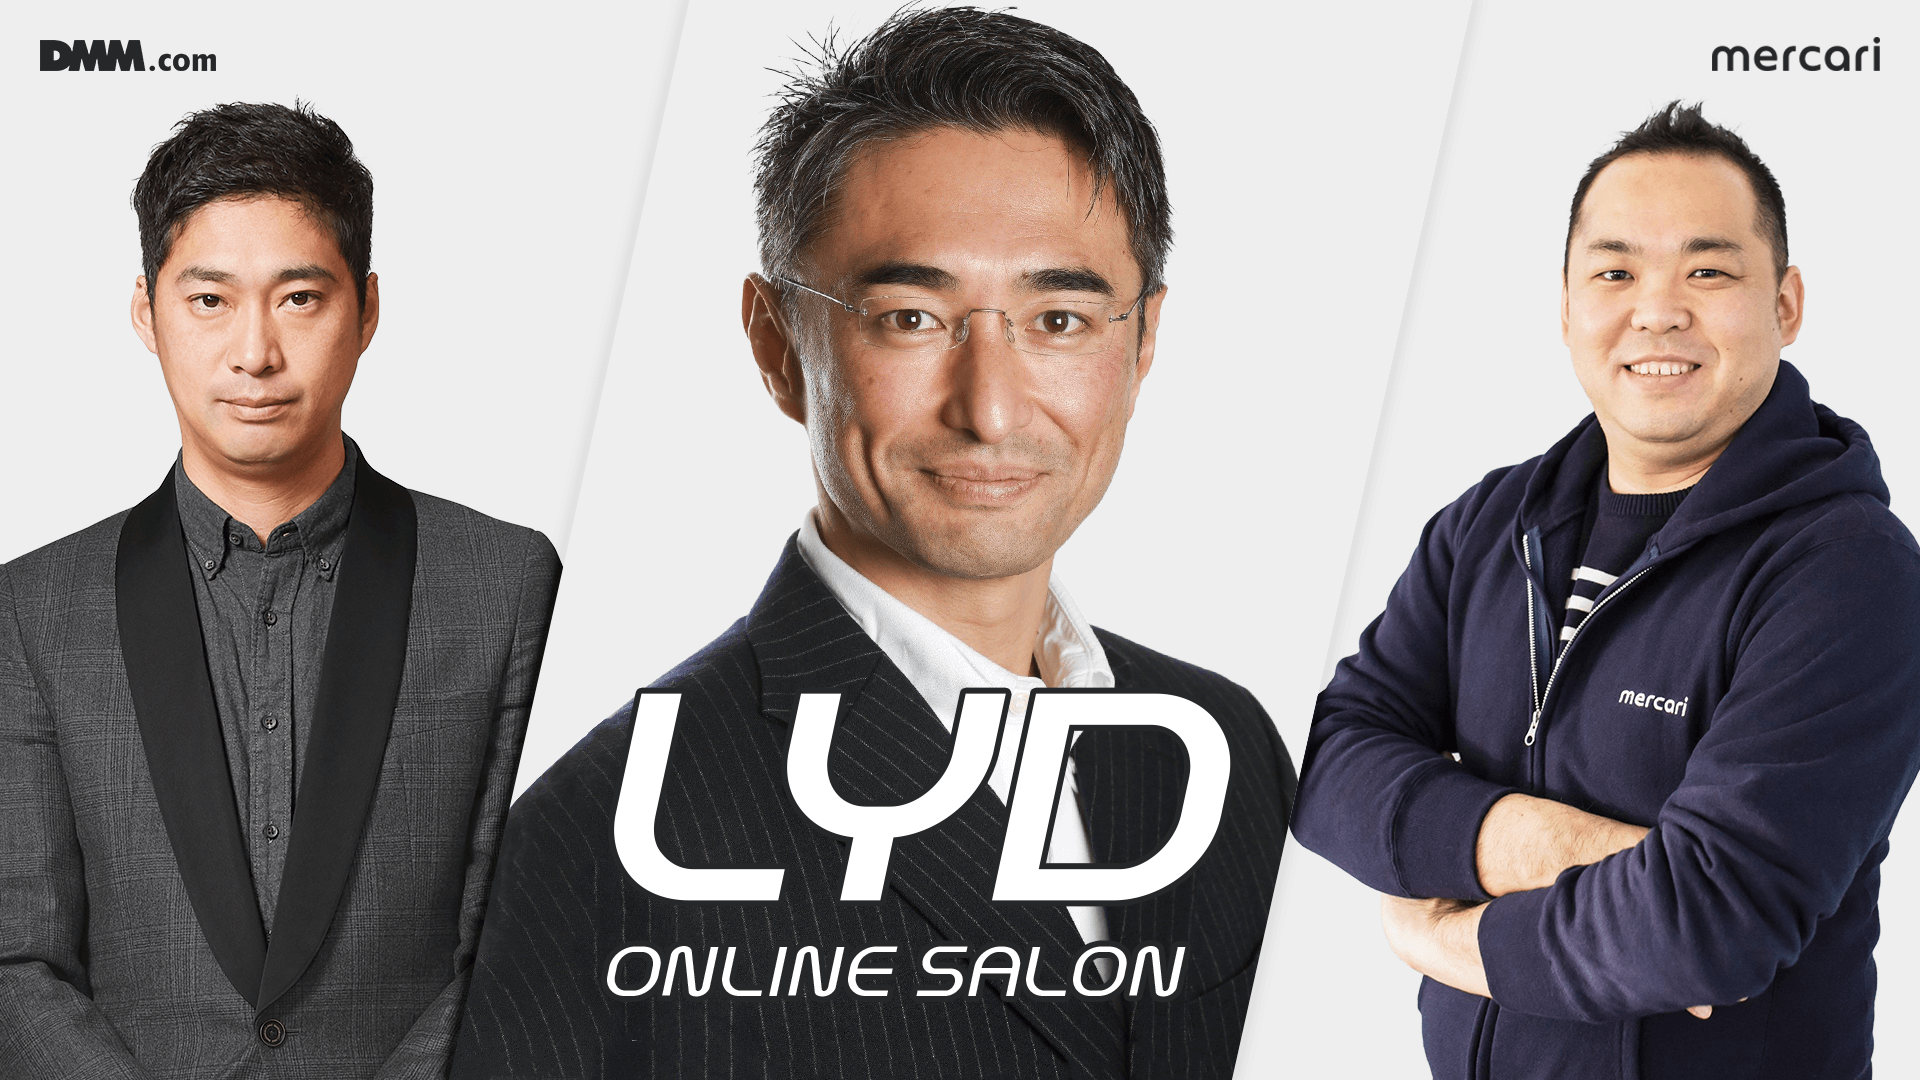 LYDオンラインサロン-Live your dreams!